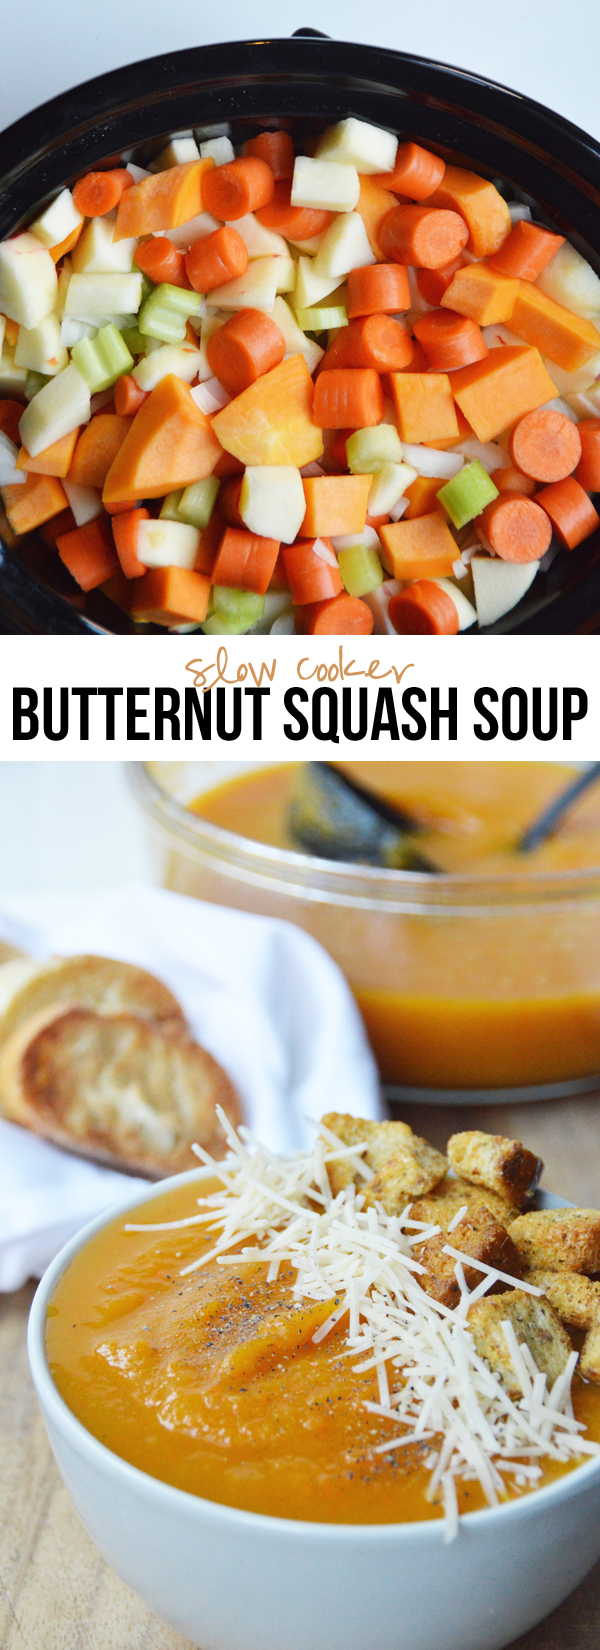 Easy Slow Cooker Butternut Squash Soup - naturally vegan & gluten-free